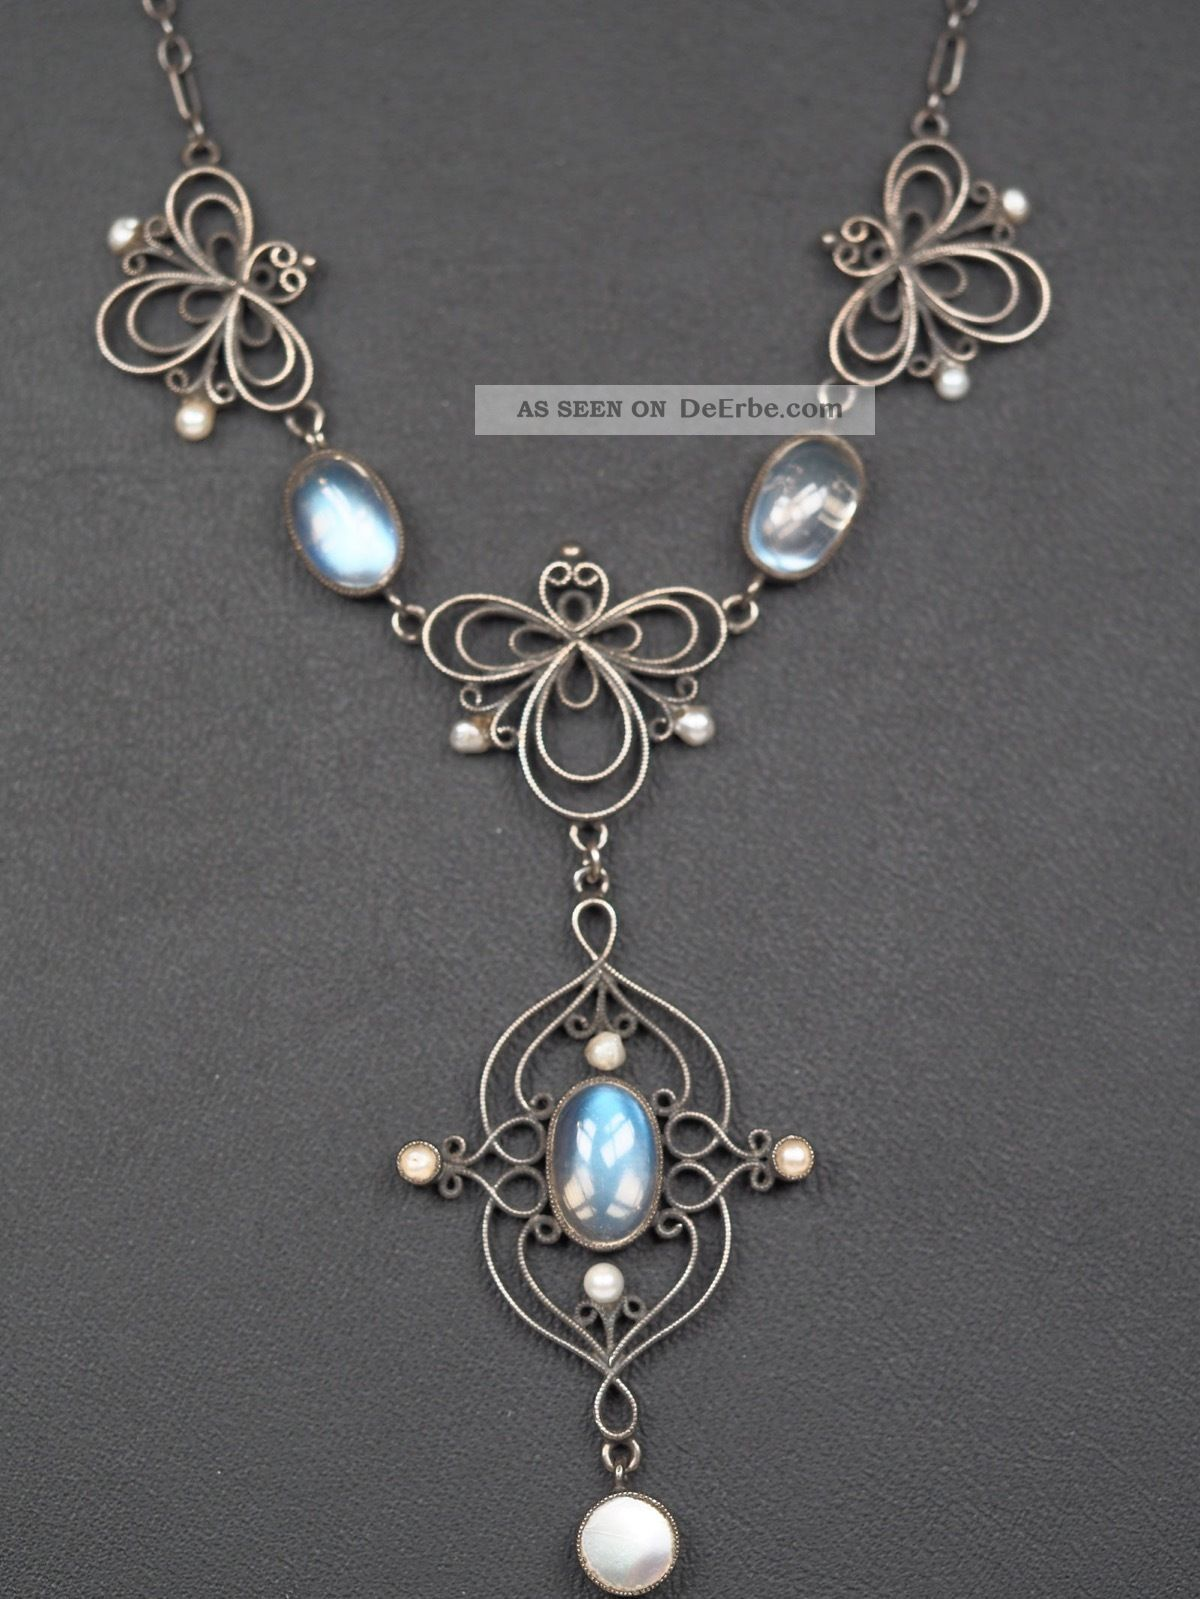 Gaskin For Liberty And Co.  Arts And Crafts Collier Schmuck nach Epochen Bild